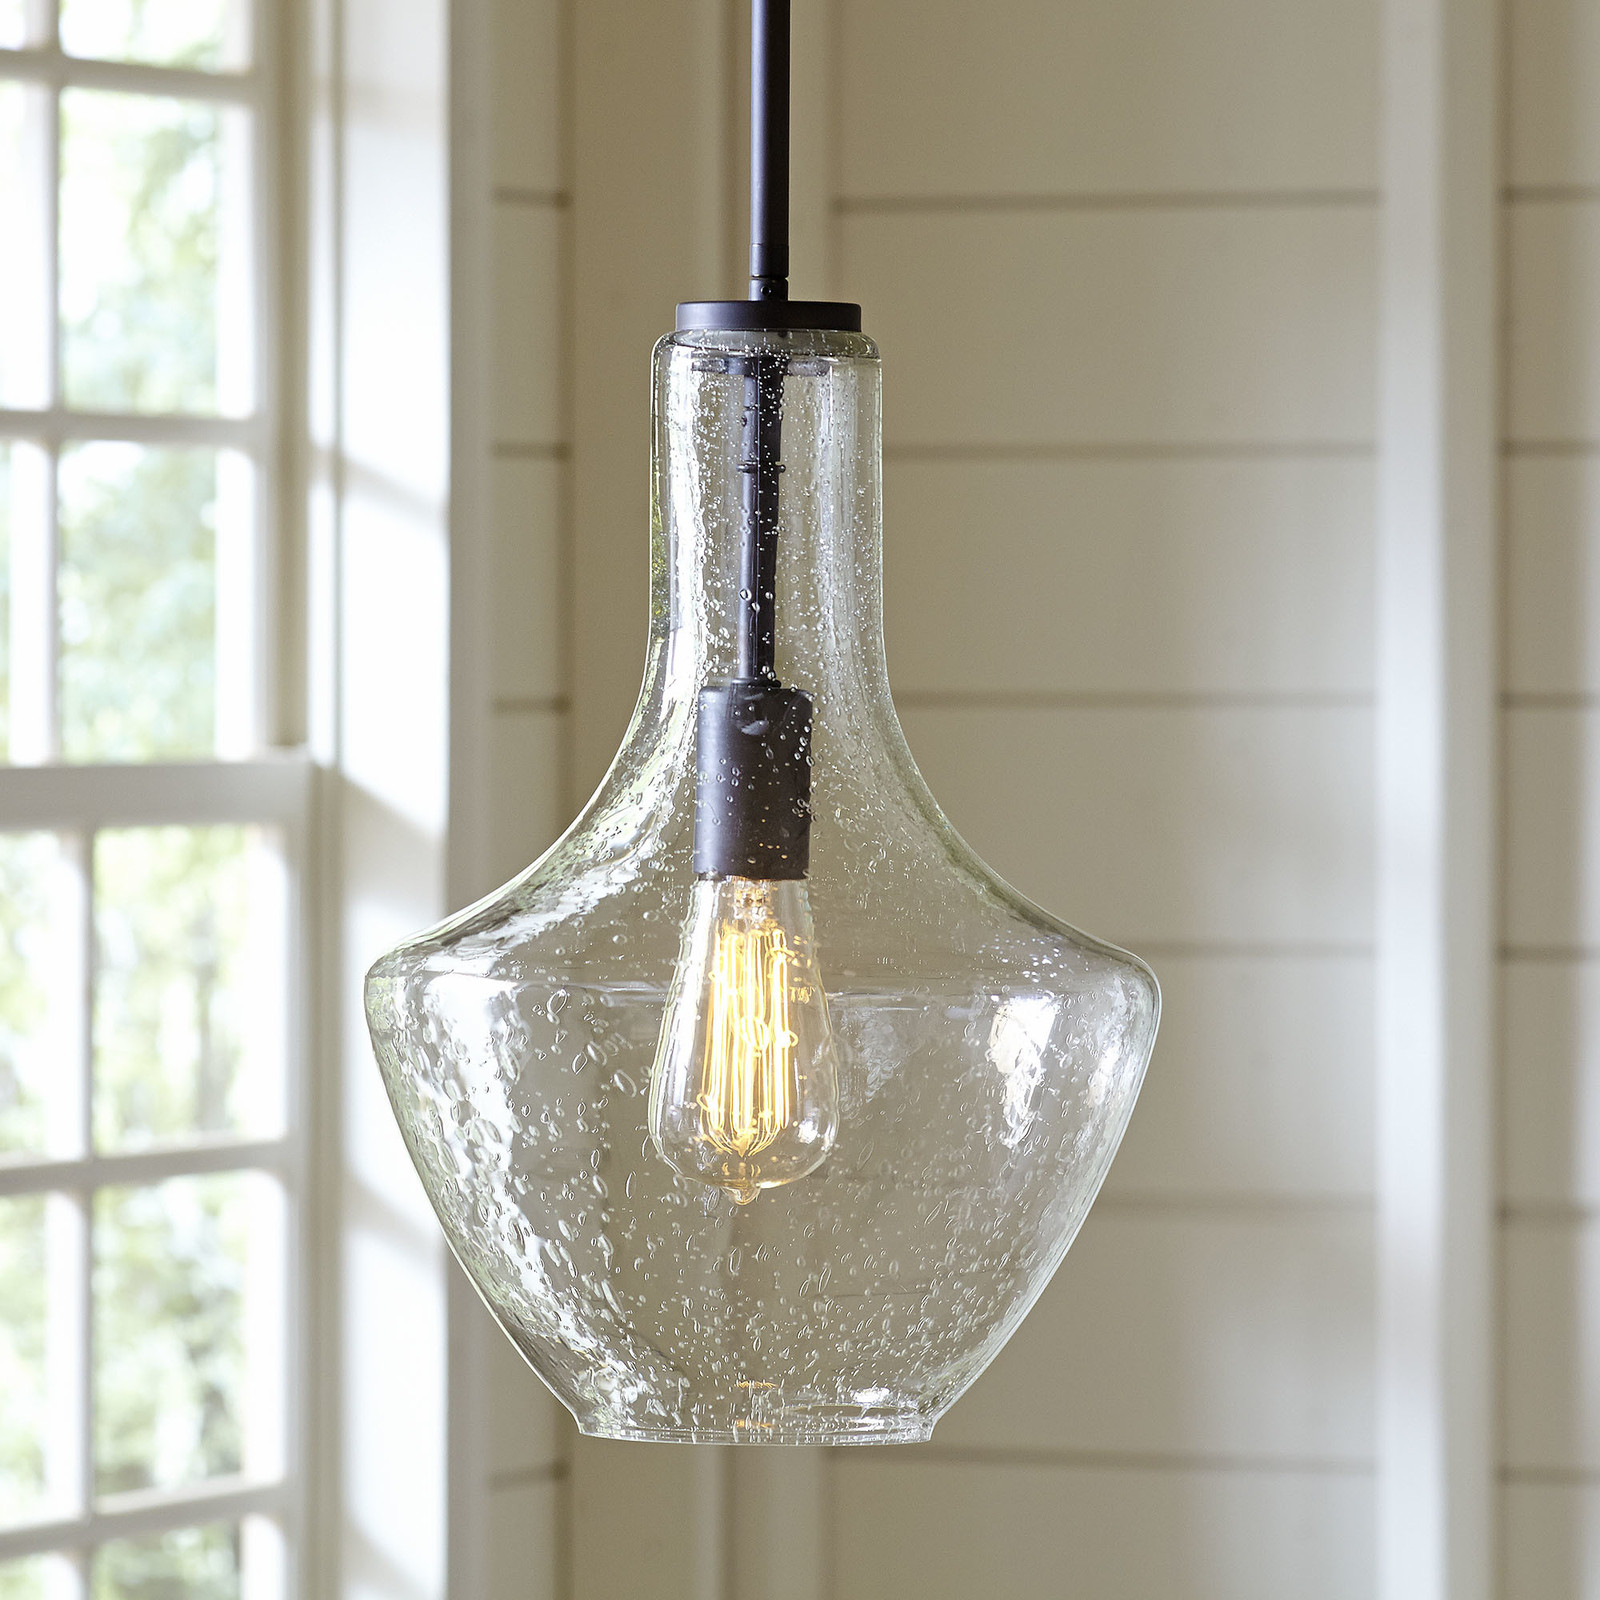 Glass Edison Lamp Edison Bulb Light Ideas 22 Floor Pendant Table Lamps